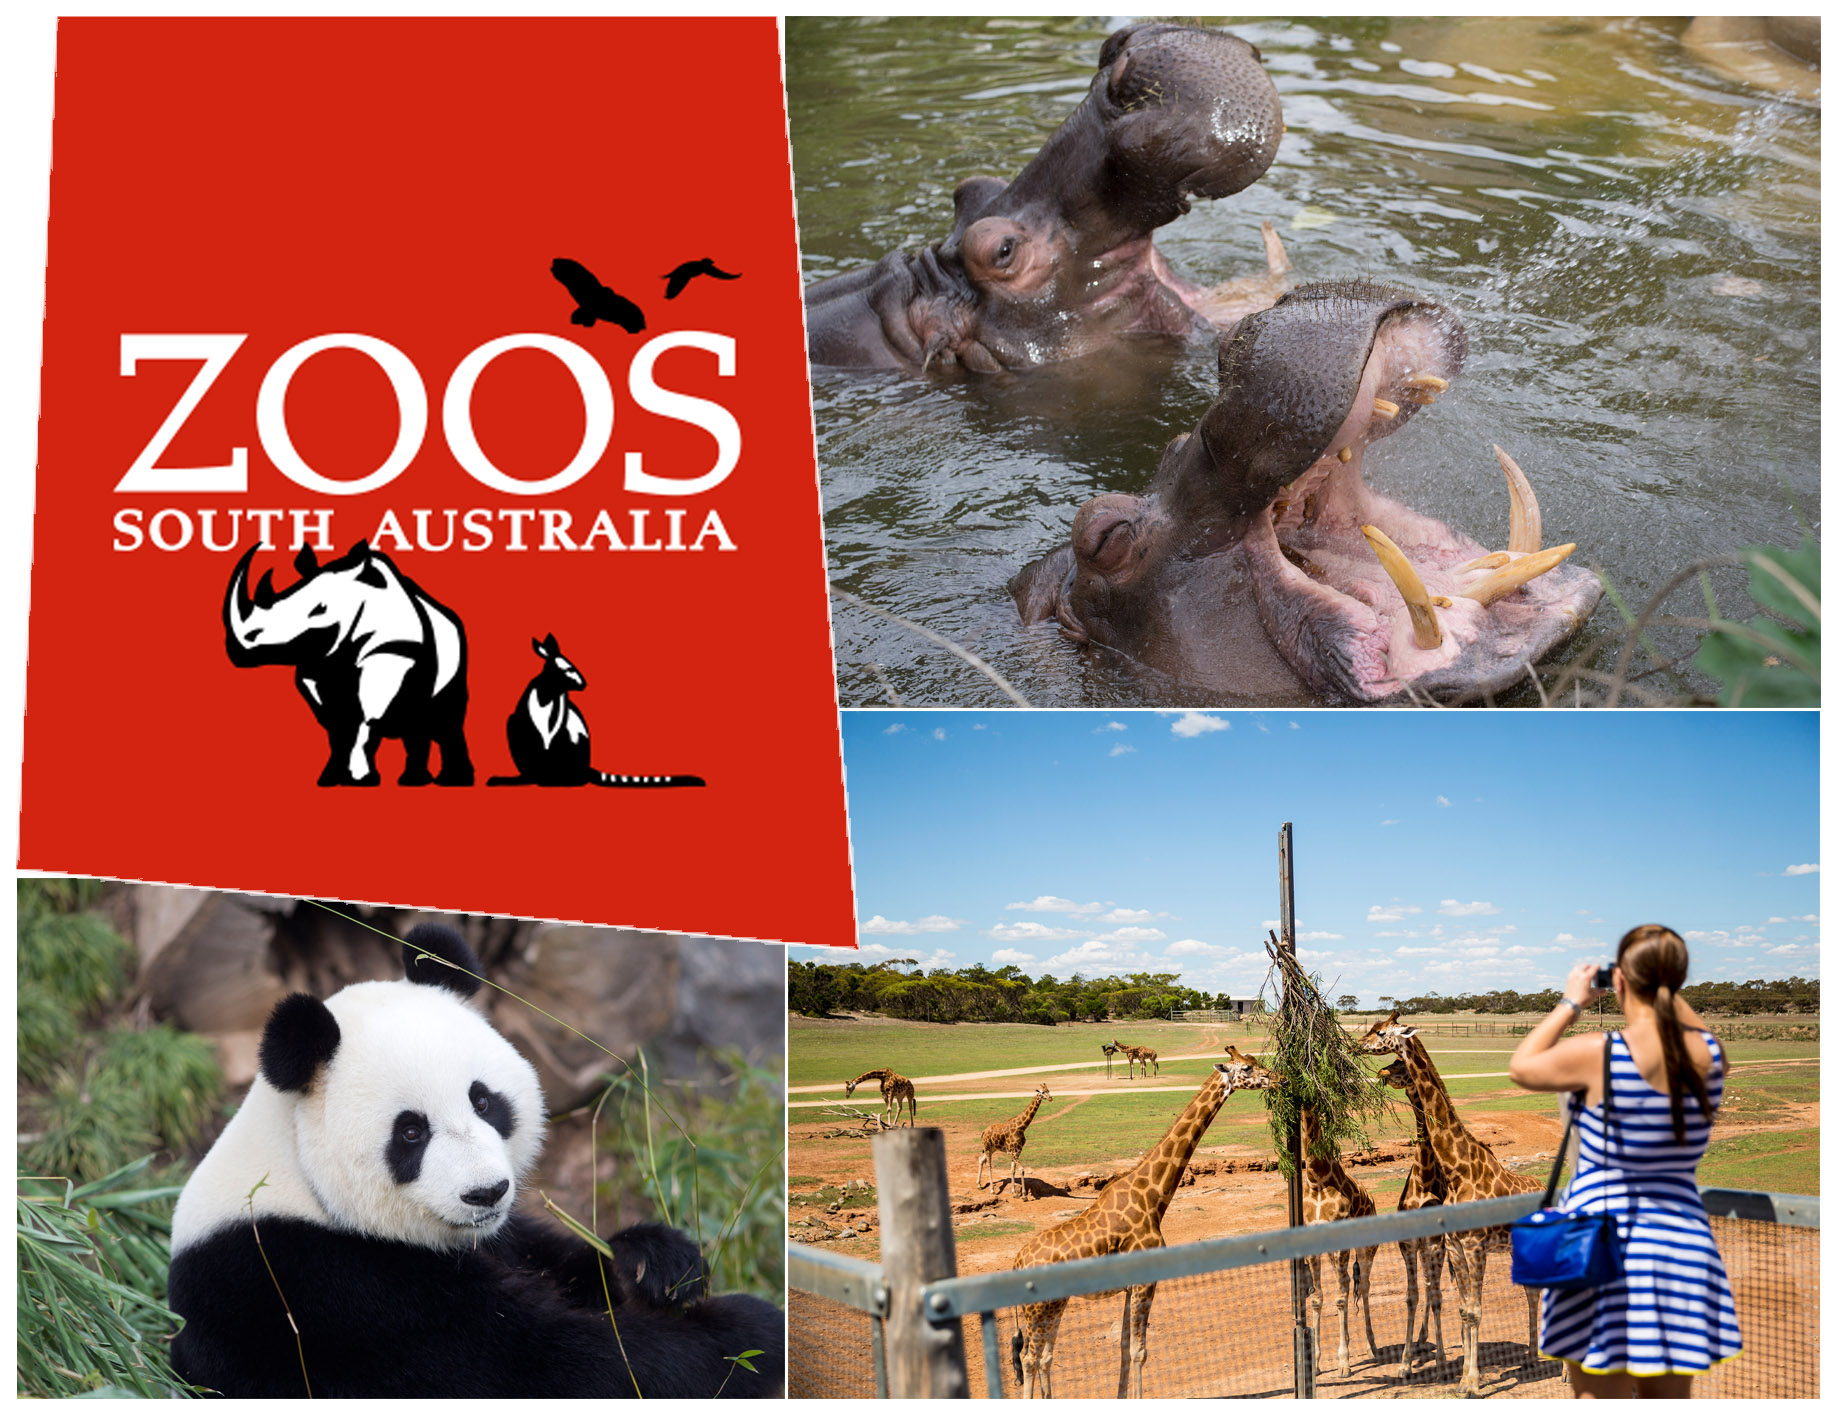 Zoos South Australia, VTicket